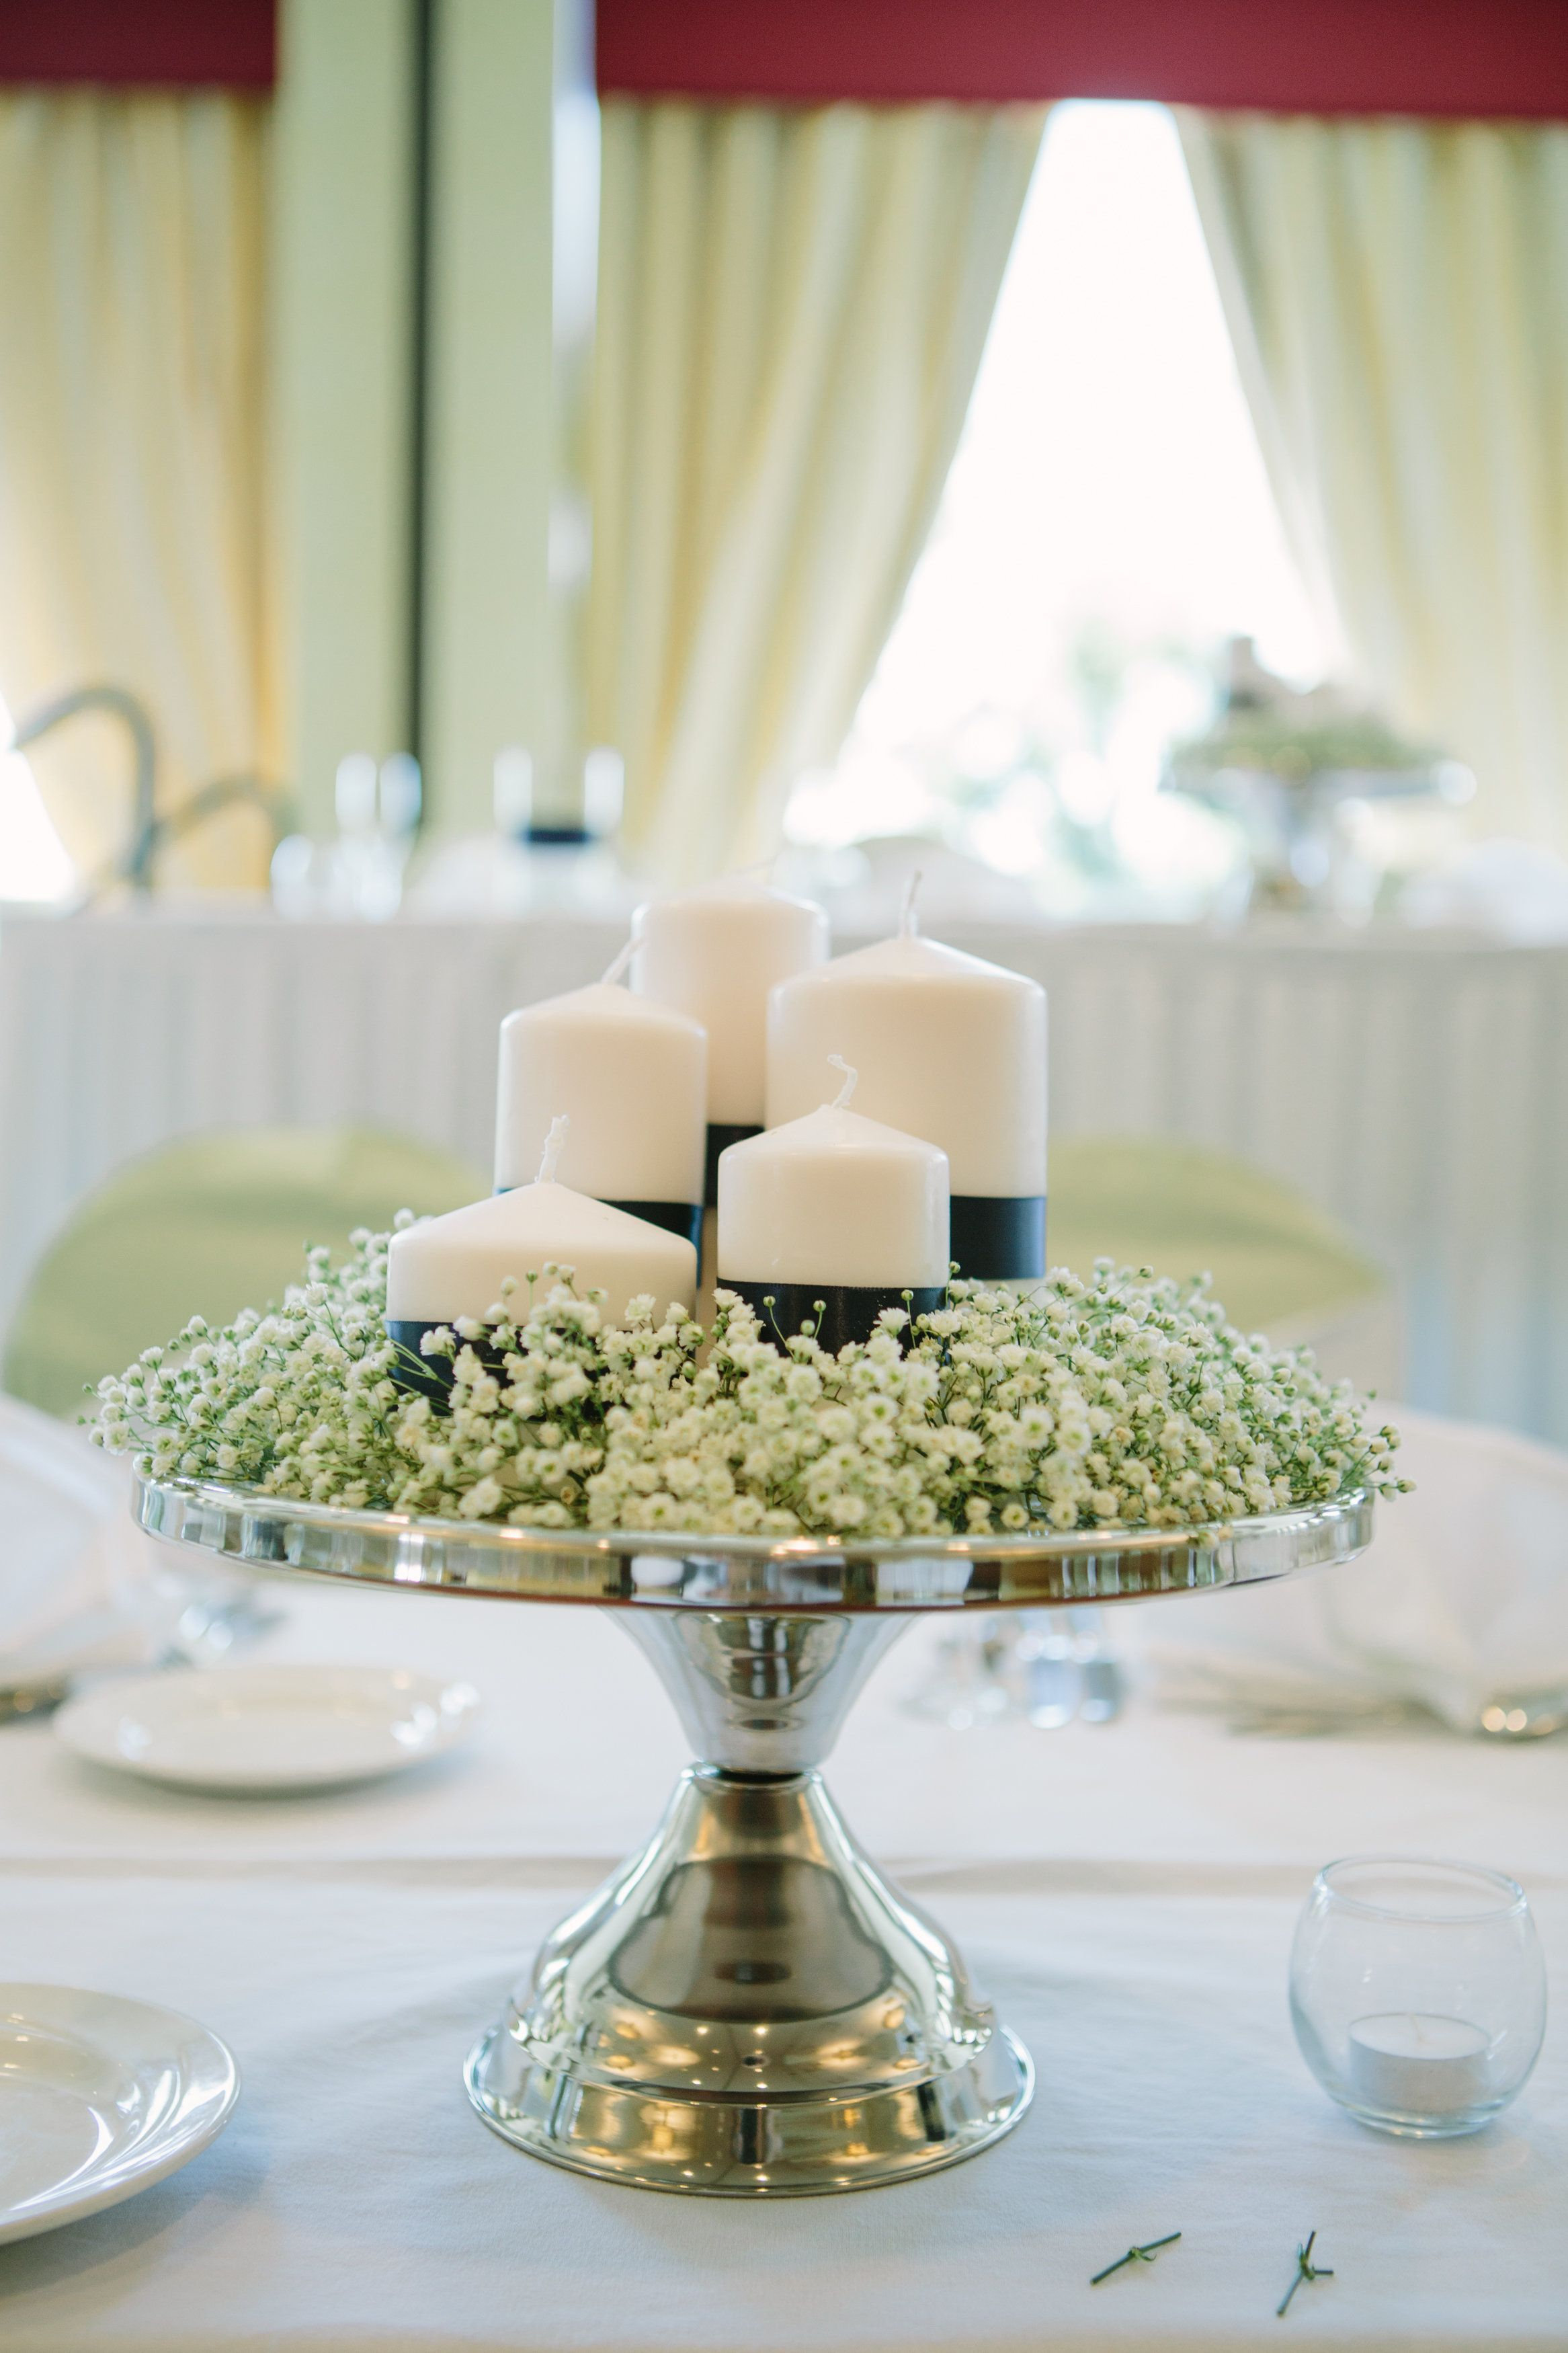 Centerpieces - stainless steel cake stands with 5 white ...